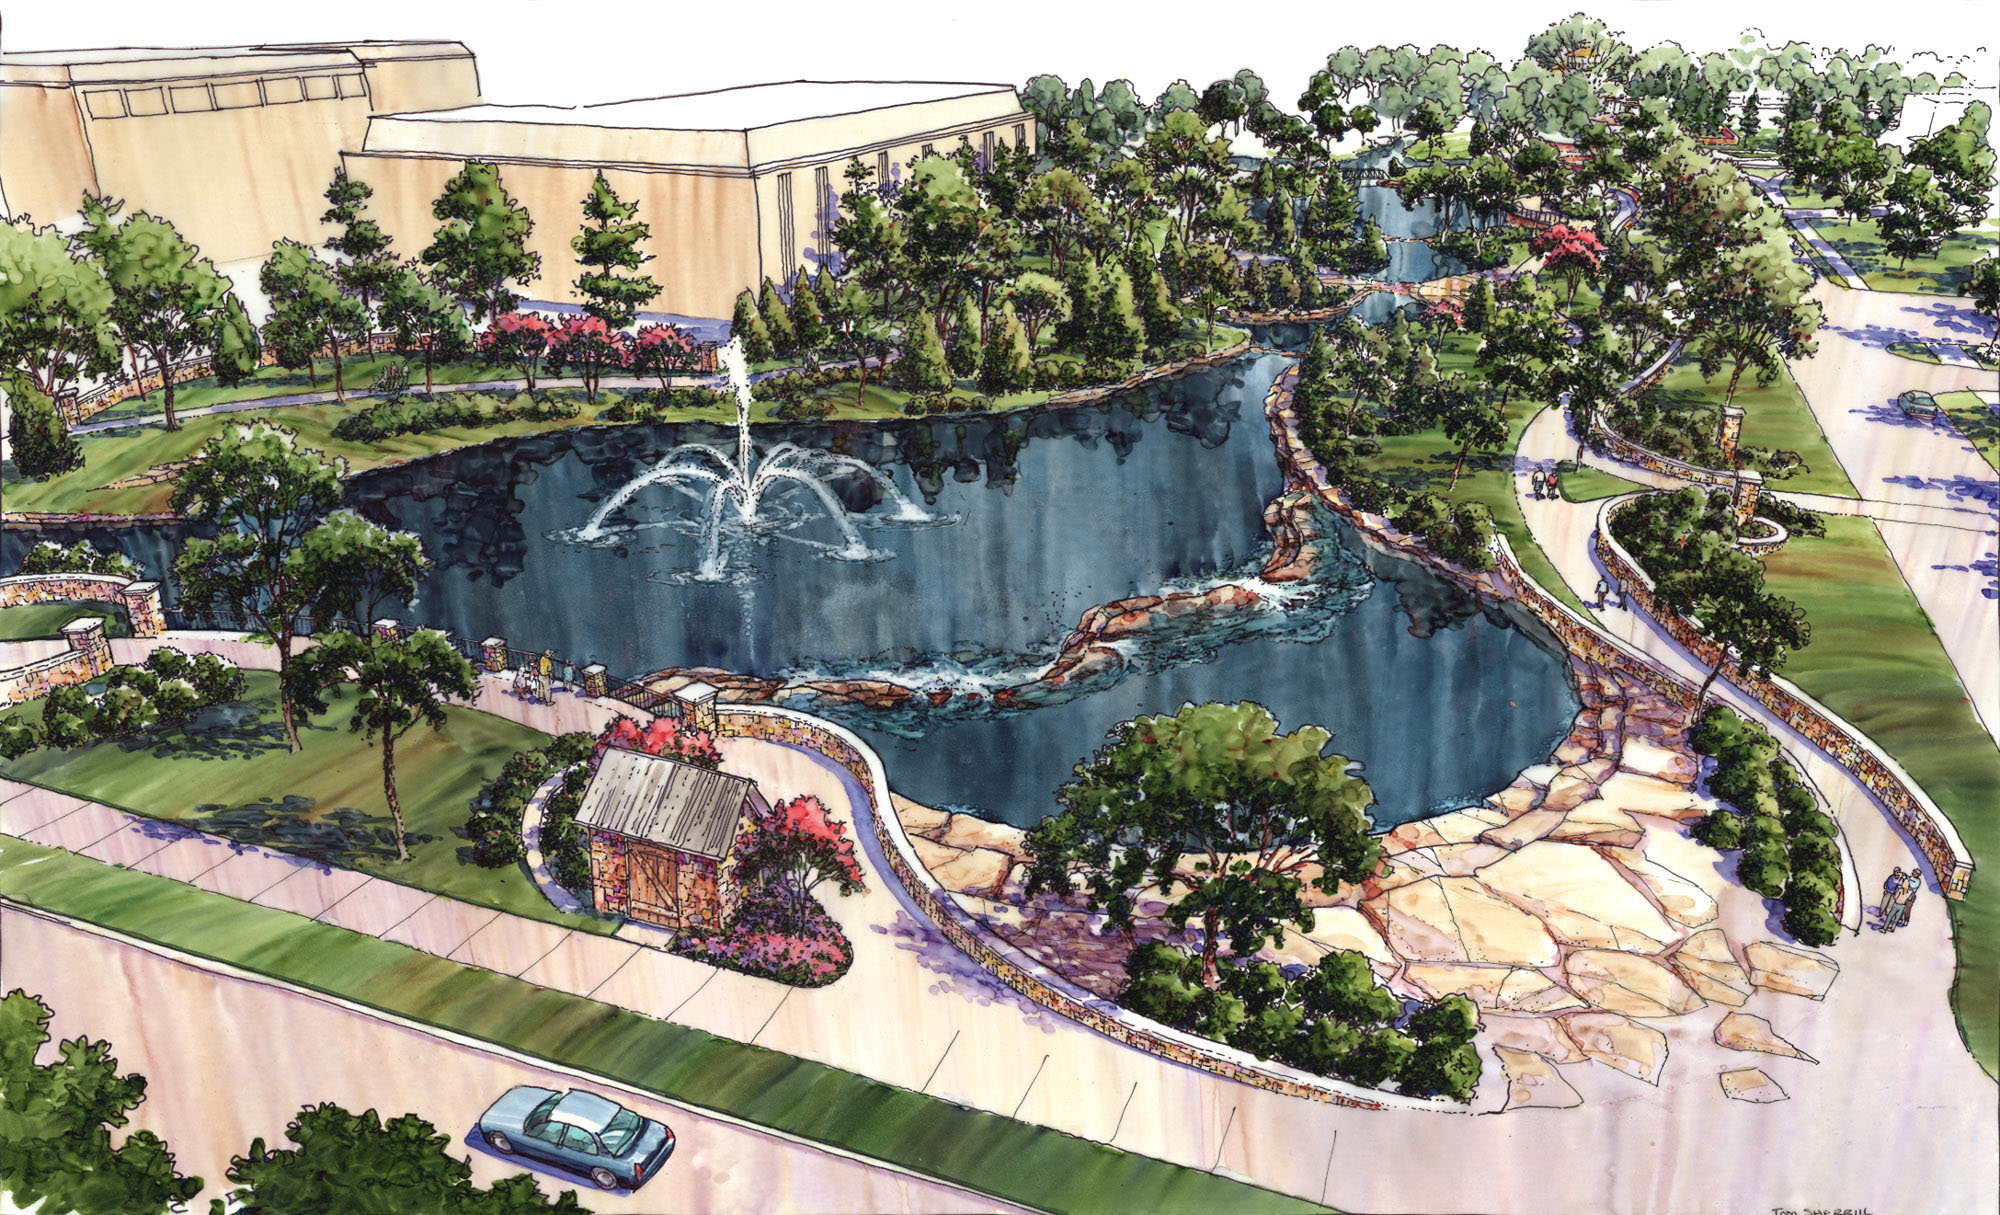 KSU_FountainView.jpg